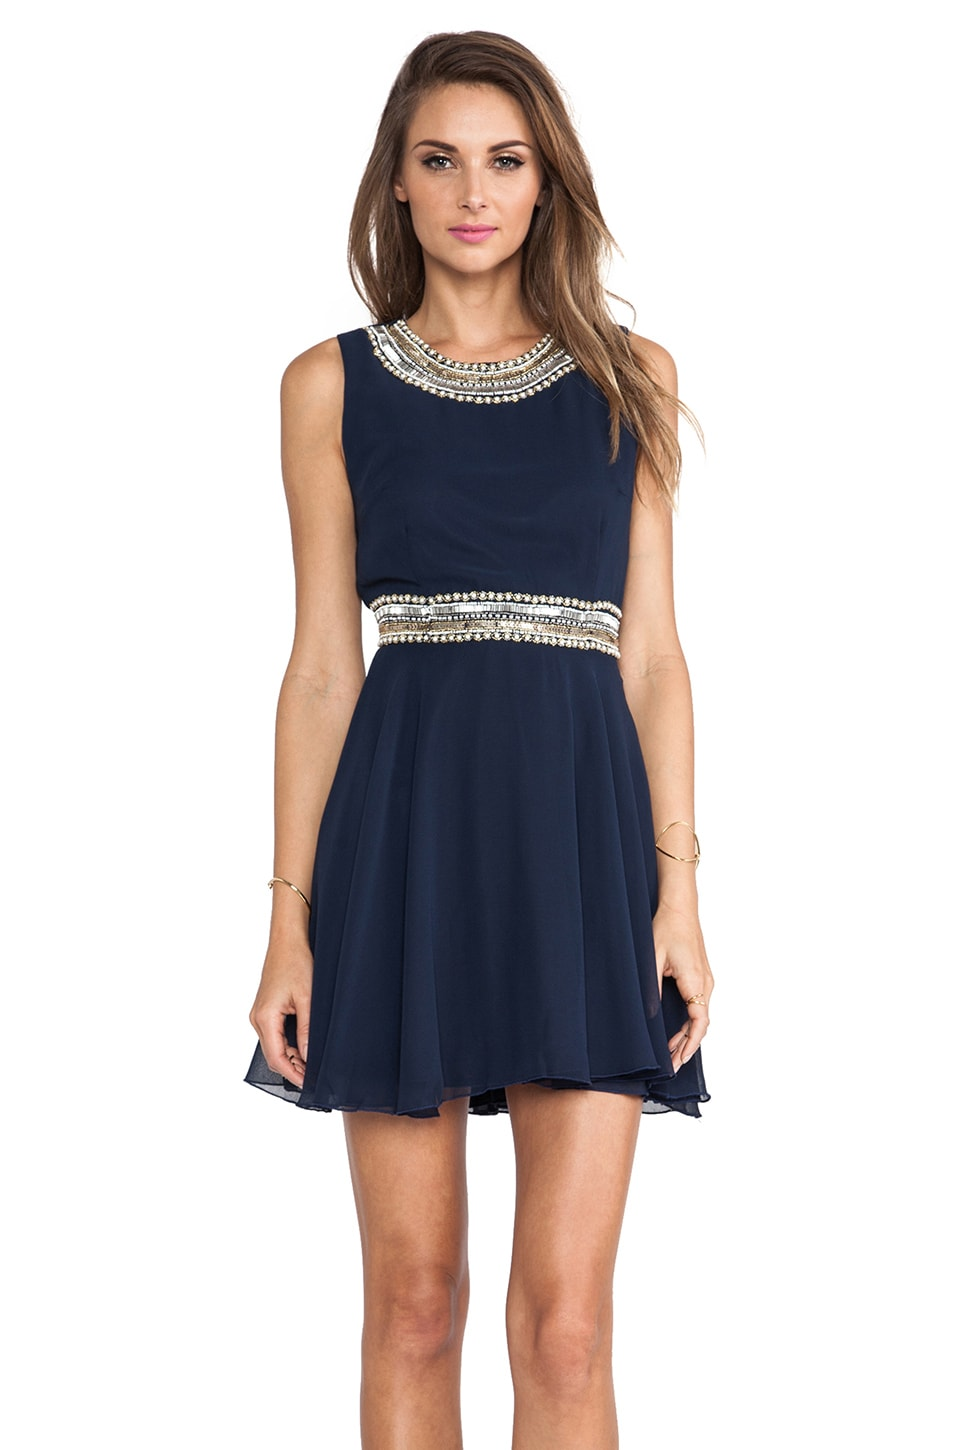 TFNC London Hope Tank Dress in Navy